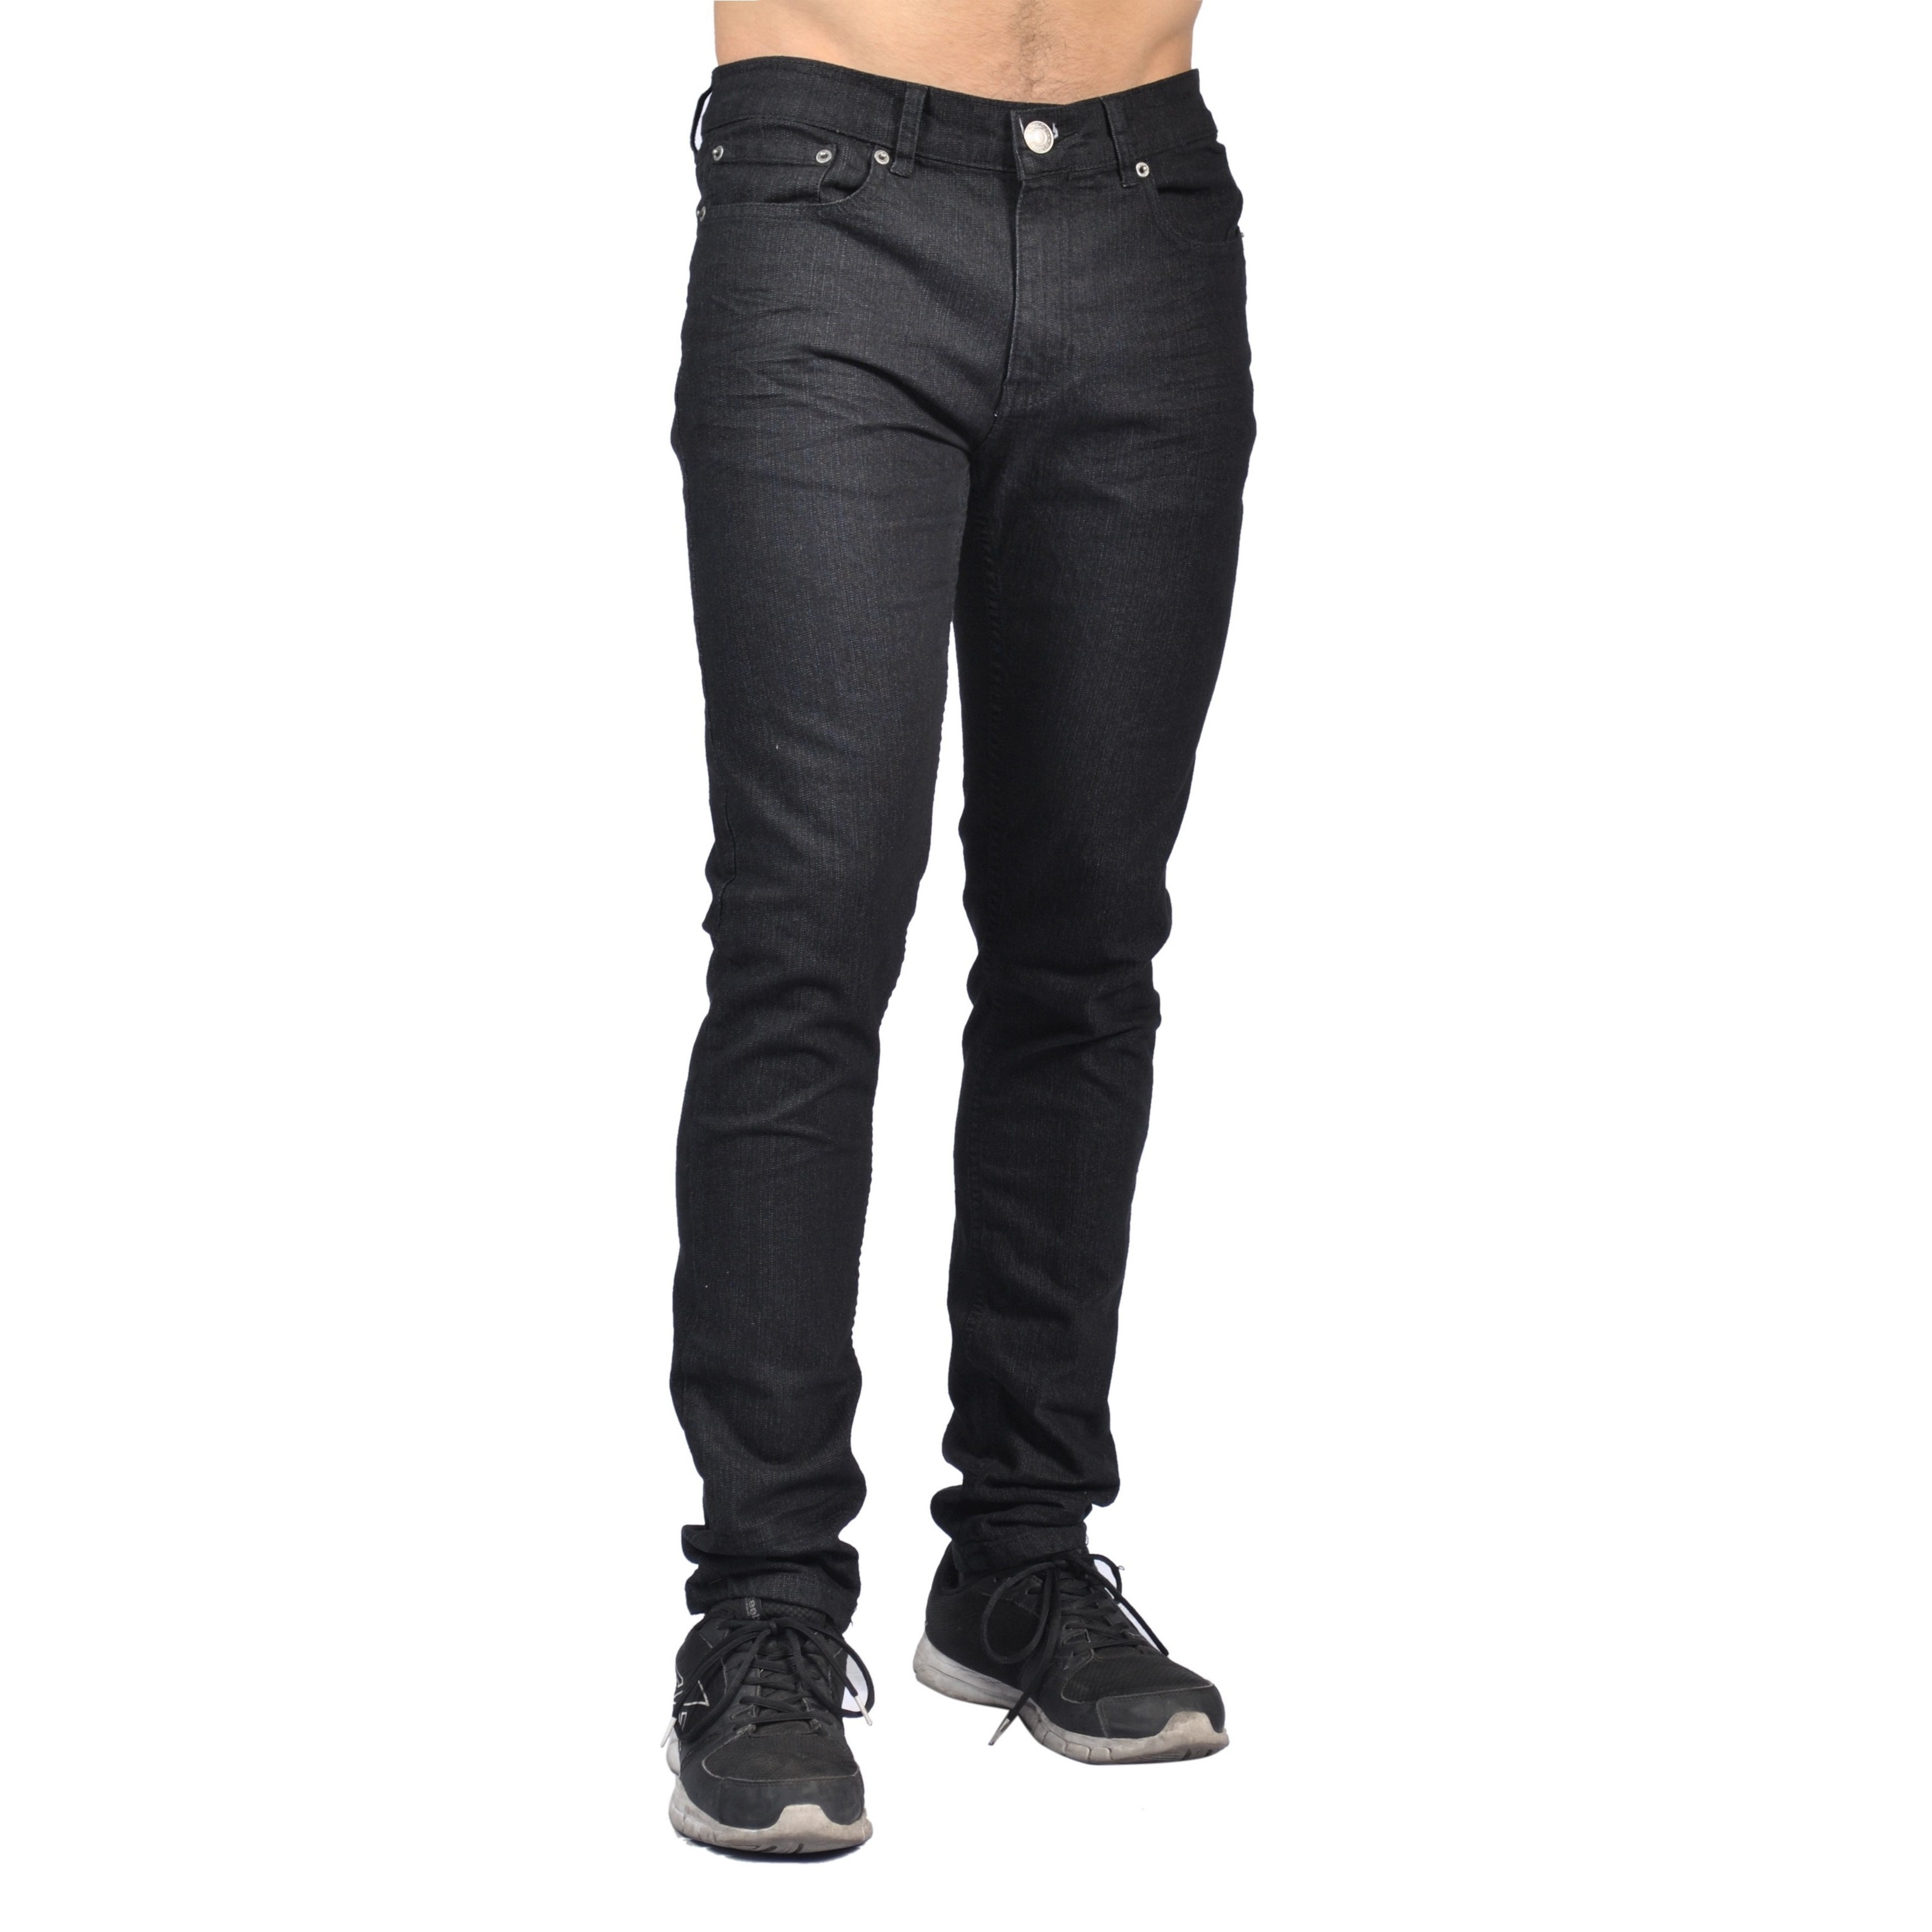 97b5b9419a78fd Indigo People Mens Slim Fit Denim Black Jeans - M. 46 Reviews. See All Top  Rated